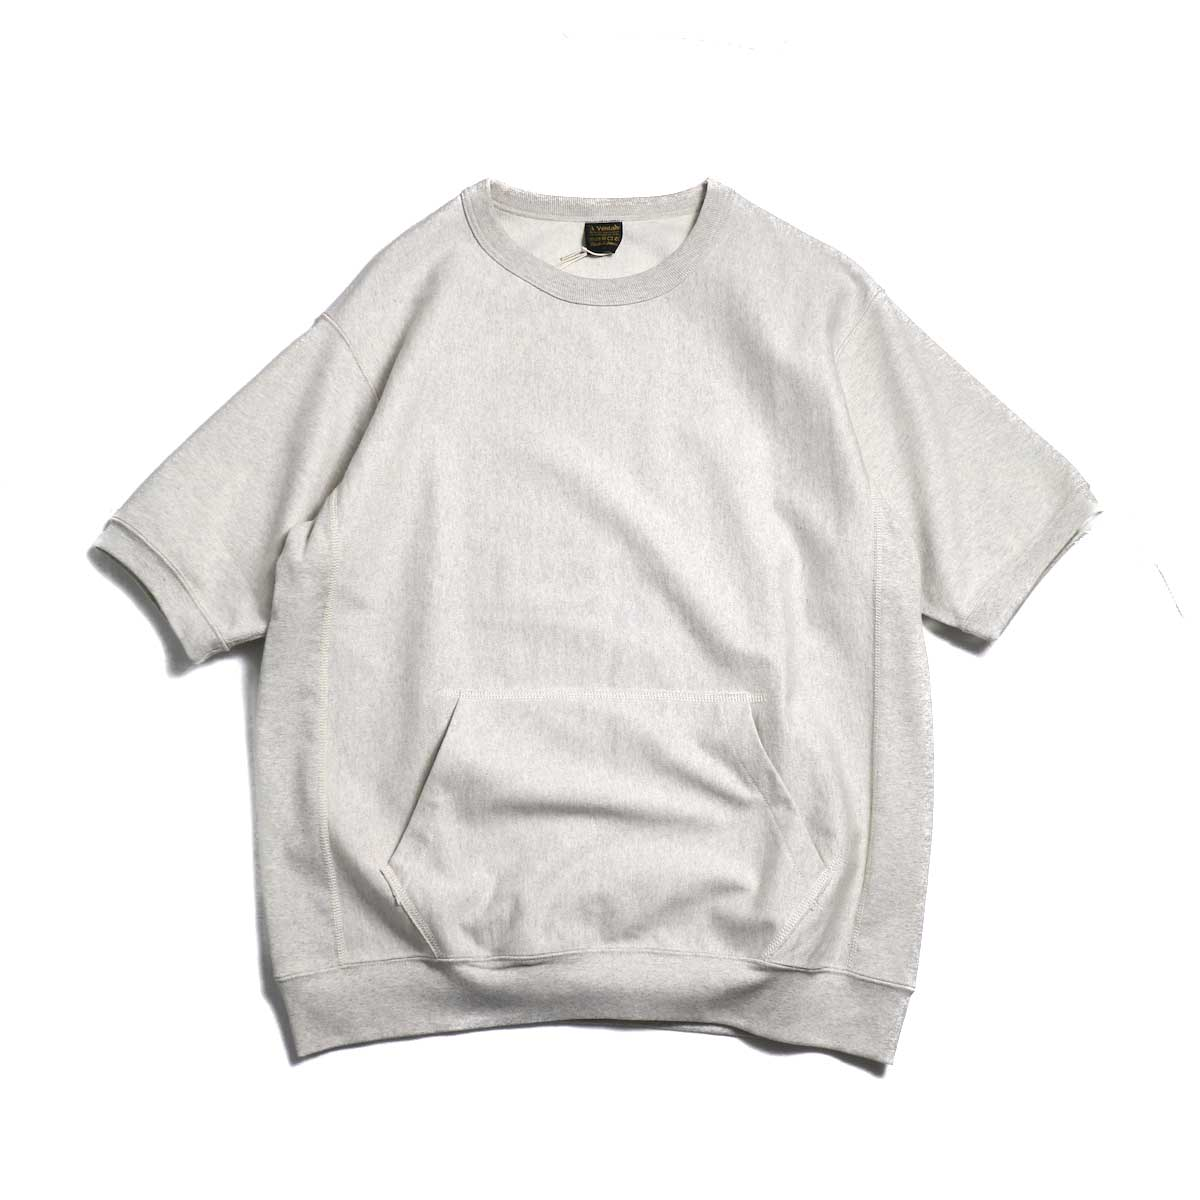 A VONTADE / Reverse Crew Top S/S -Oatmeal